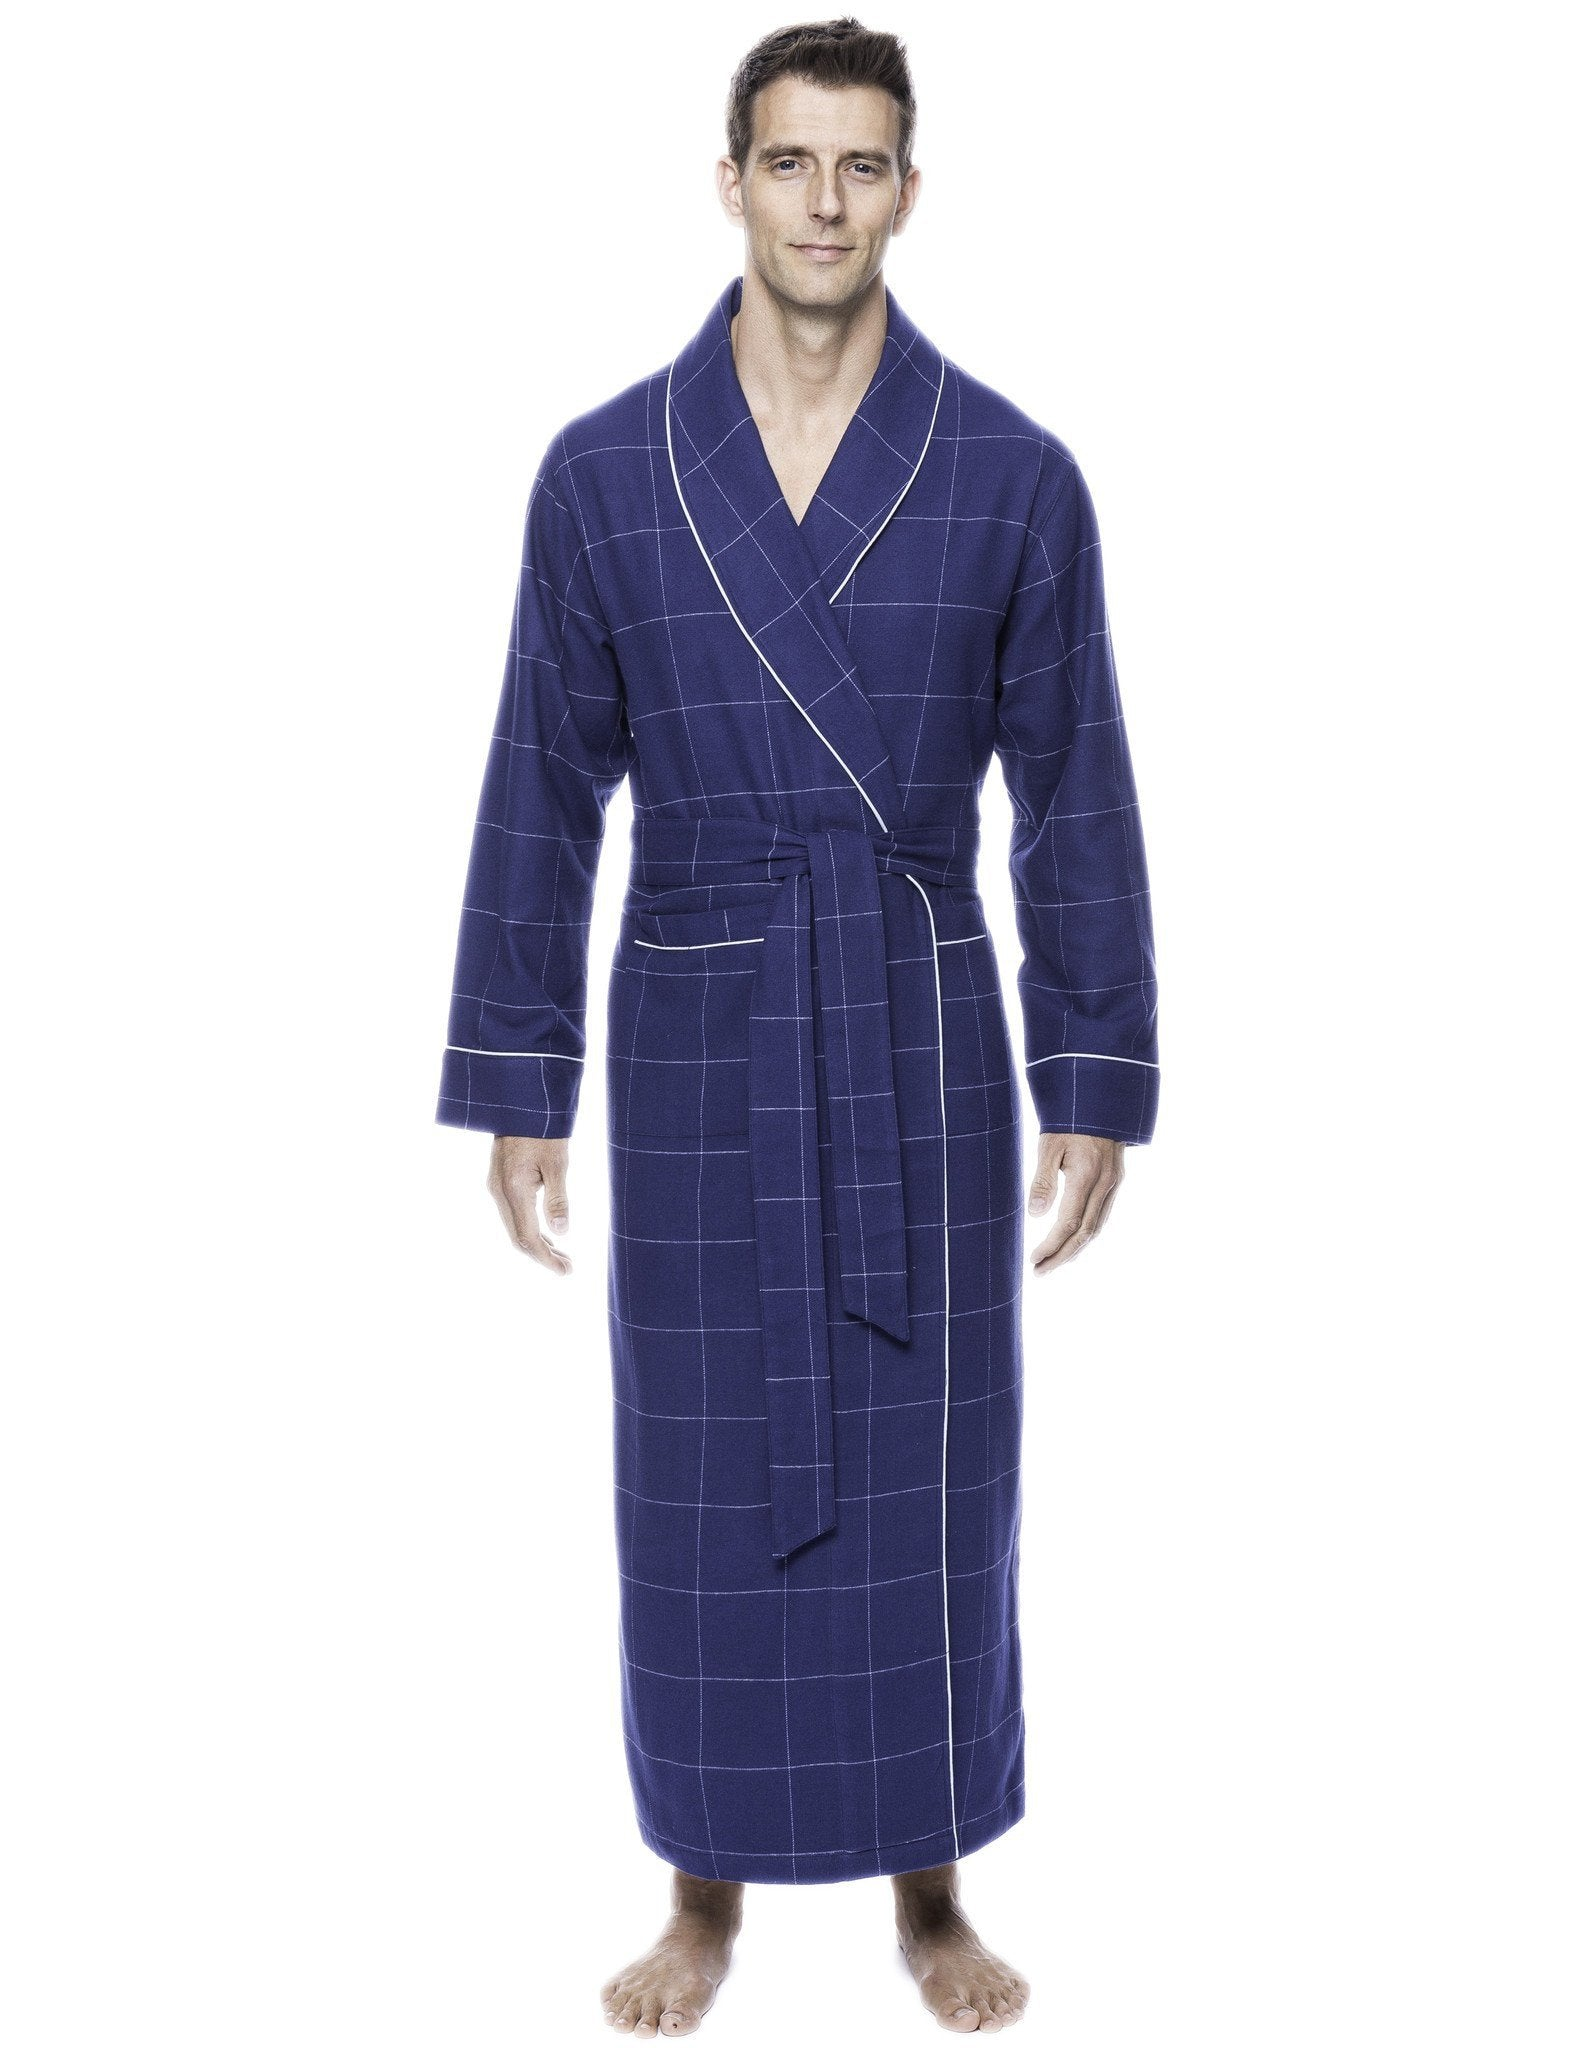 Box Packaged Men's Premium 100% Cotton Flannel Long Robe - Windowpane Checks Dark Blue